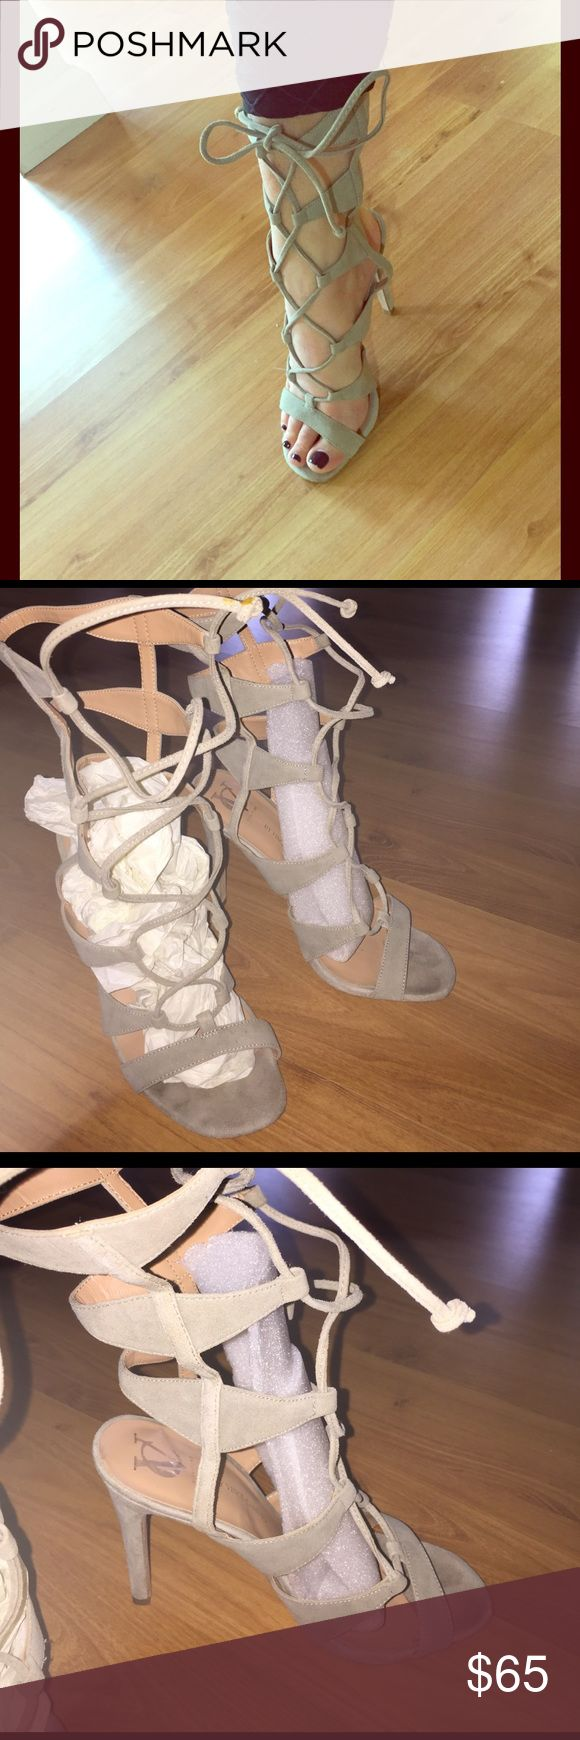 VC SIGNATURE gladiator sandal heels Taupe suede leather- made in Italy. Size 7.5 but fits a 7 foot and 7.5 foot. Super sexy lace tie up heel gladiator with a 4 inch heel. Worn- but in great condition. Vince Camuto Shoes Heels